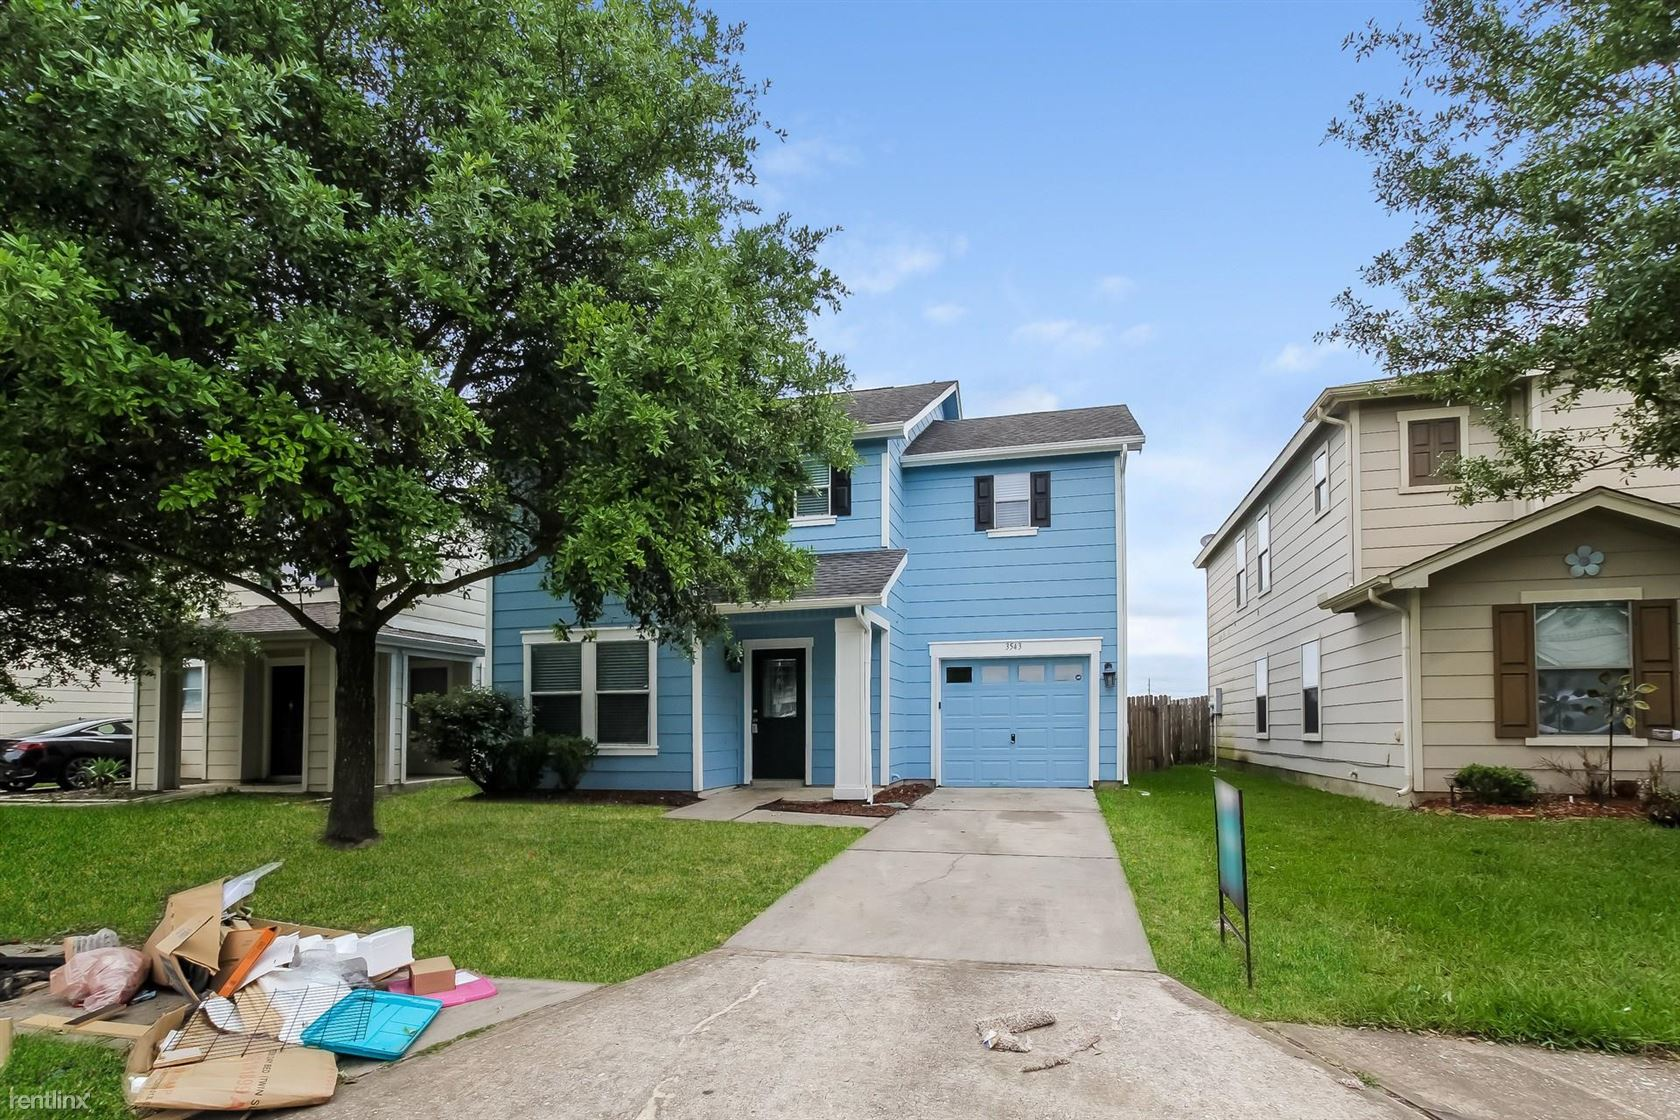 3543 Red Meadows Dr, Spring, TX - $1,545